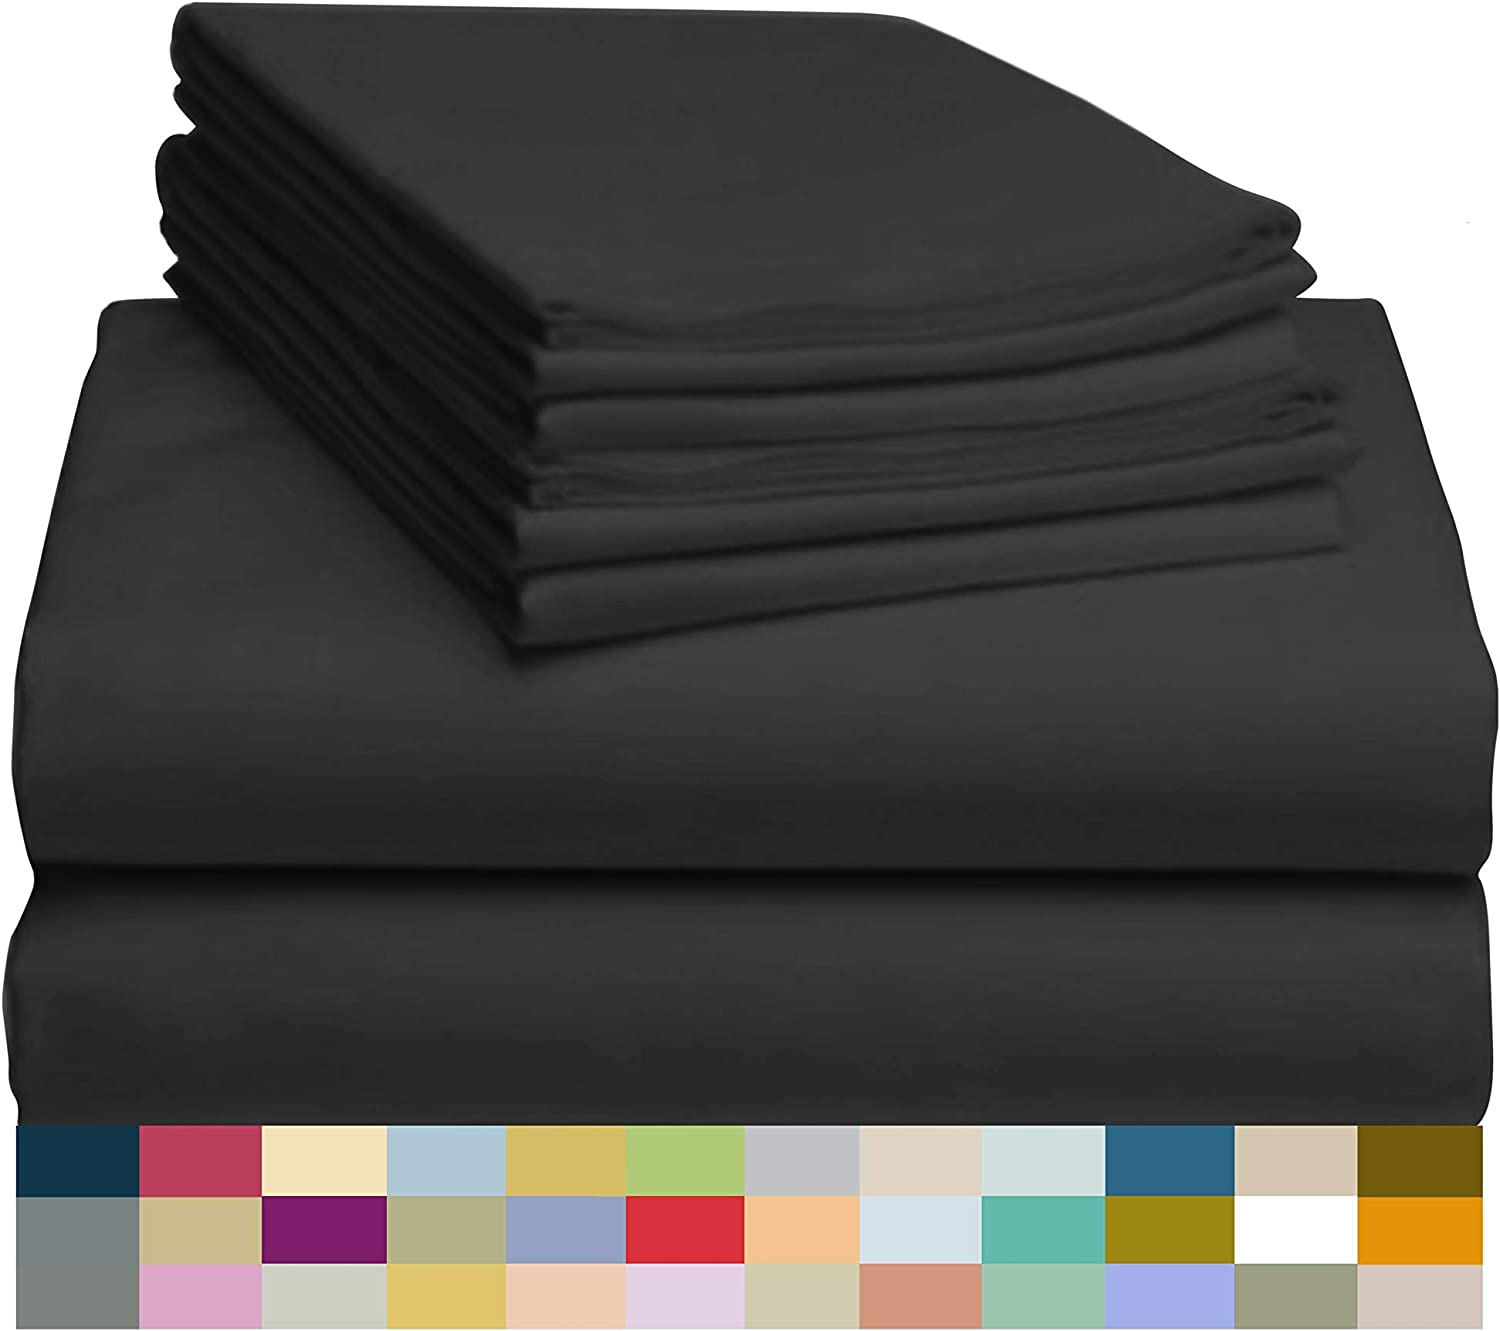 """LuxClub 6 PC Sheet Set Bamboo Sheets Deep Pockets 18"""" Eco Friendly Wrinkle Free Sheets Hypoallergenic Anti-Bacteria Machine Washable Hotel Bedding Silky Soft - Black Full: Home & Kitchen"""